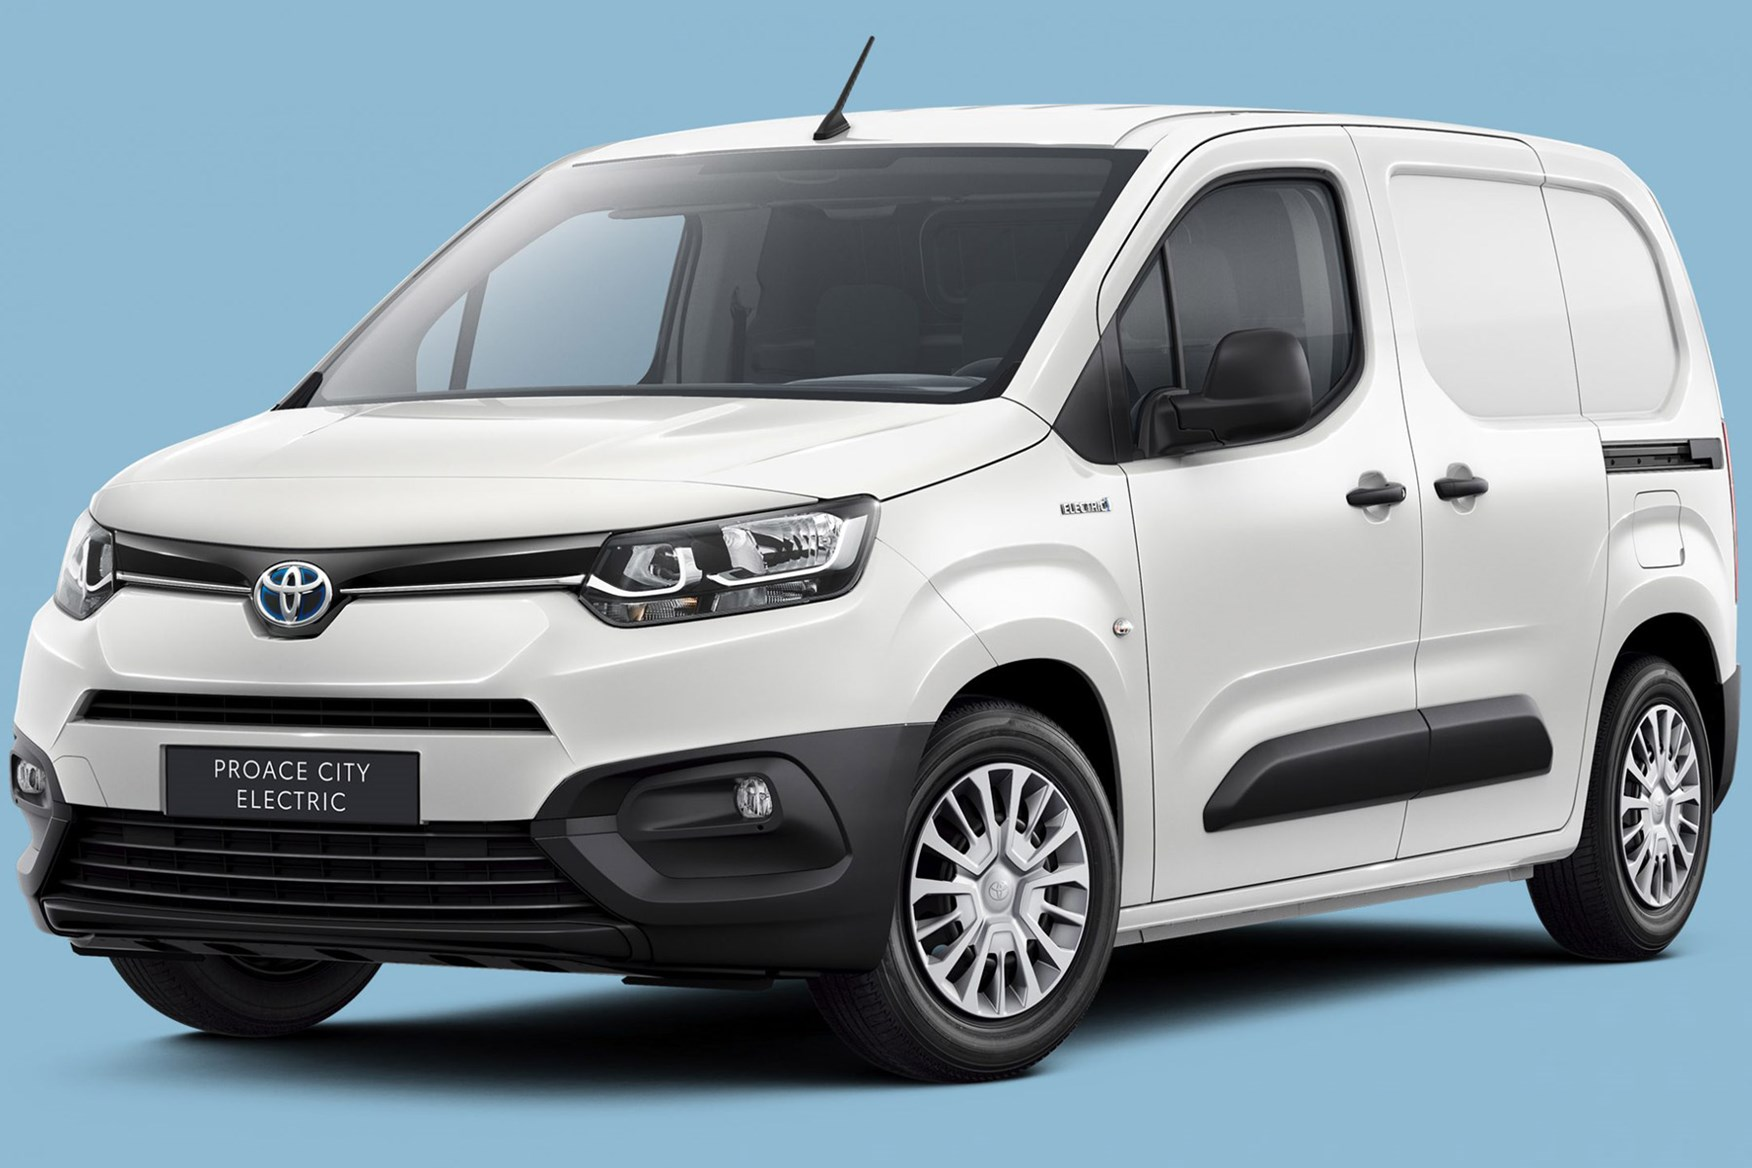 Toyota Proace City Electric van on sale in 2021